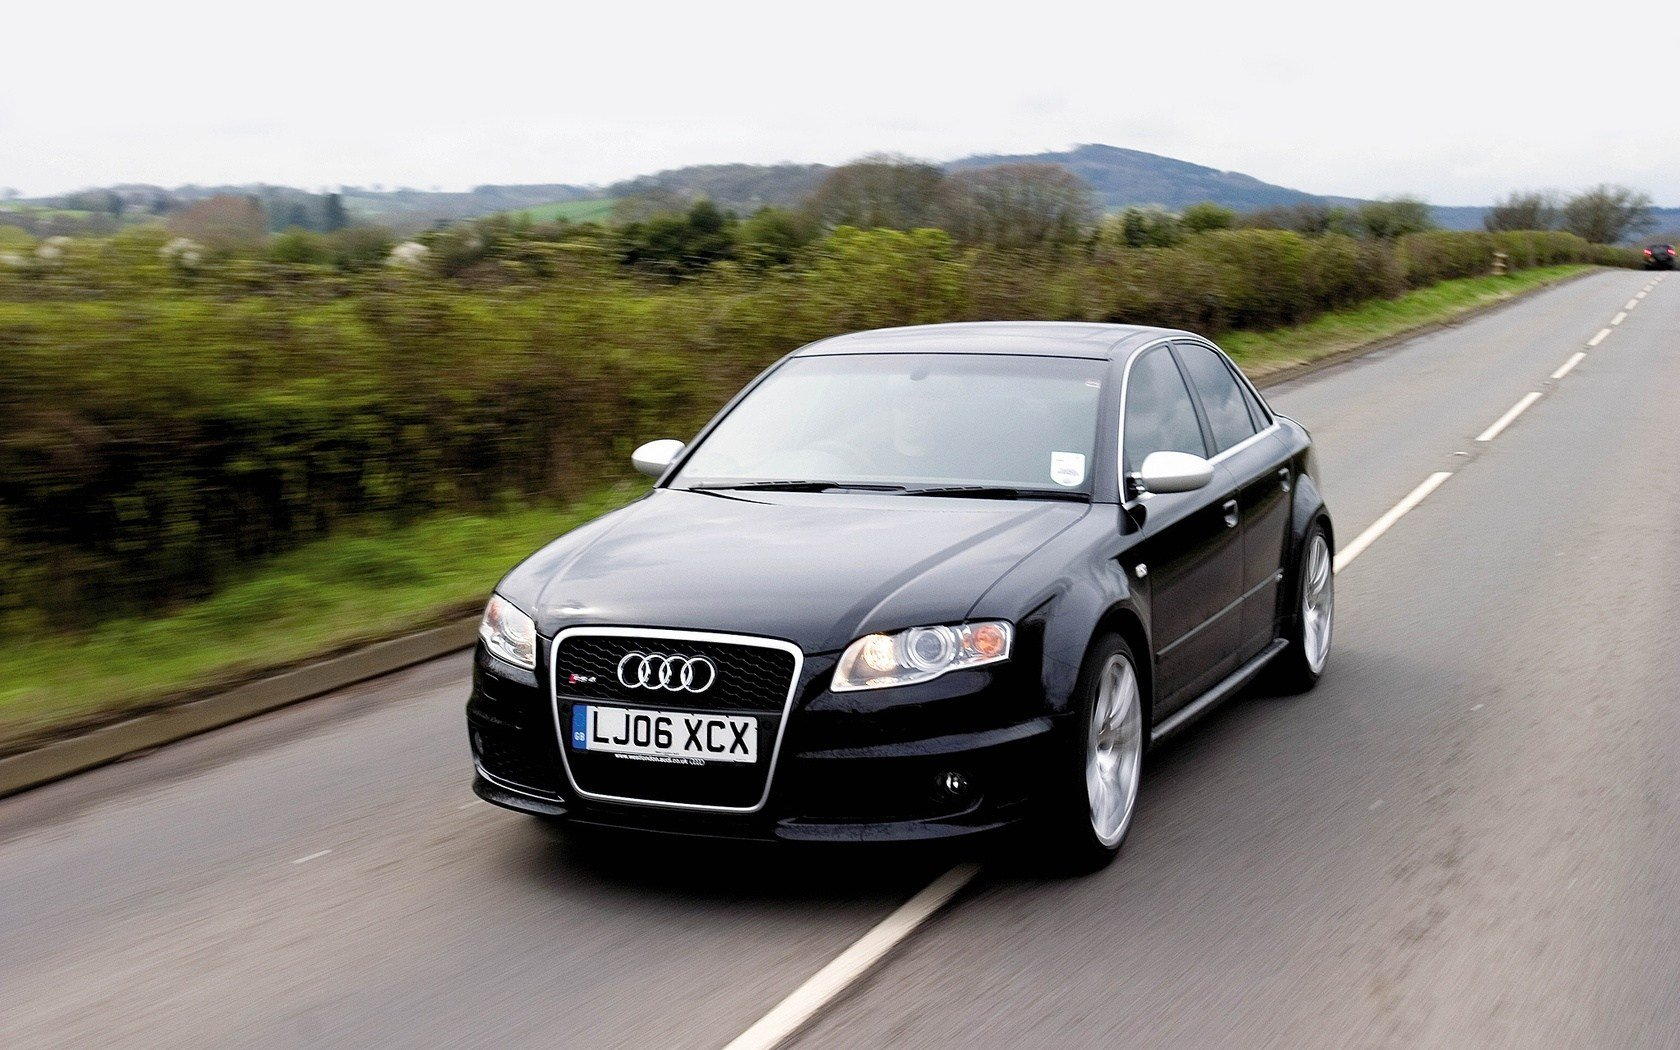 Latest Audi Rs4 Black Car Wallpapers 1680X1050 608192 Free Download